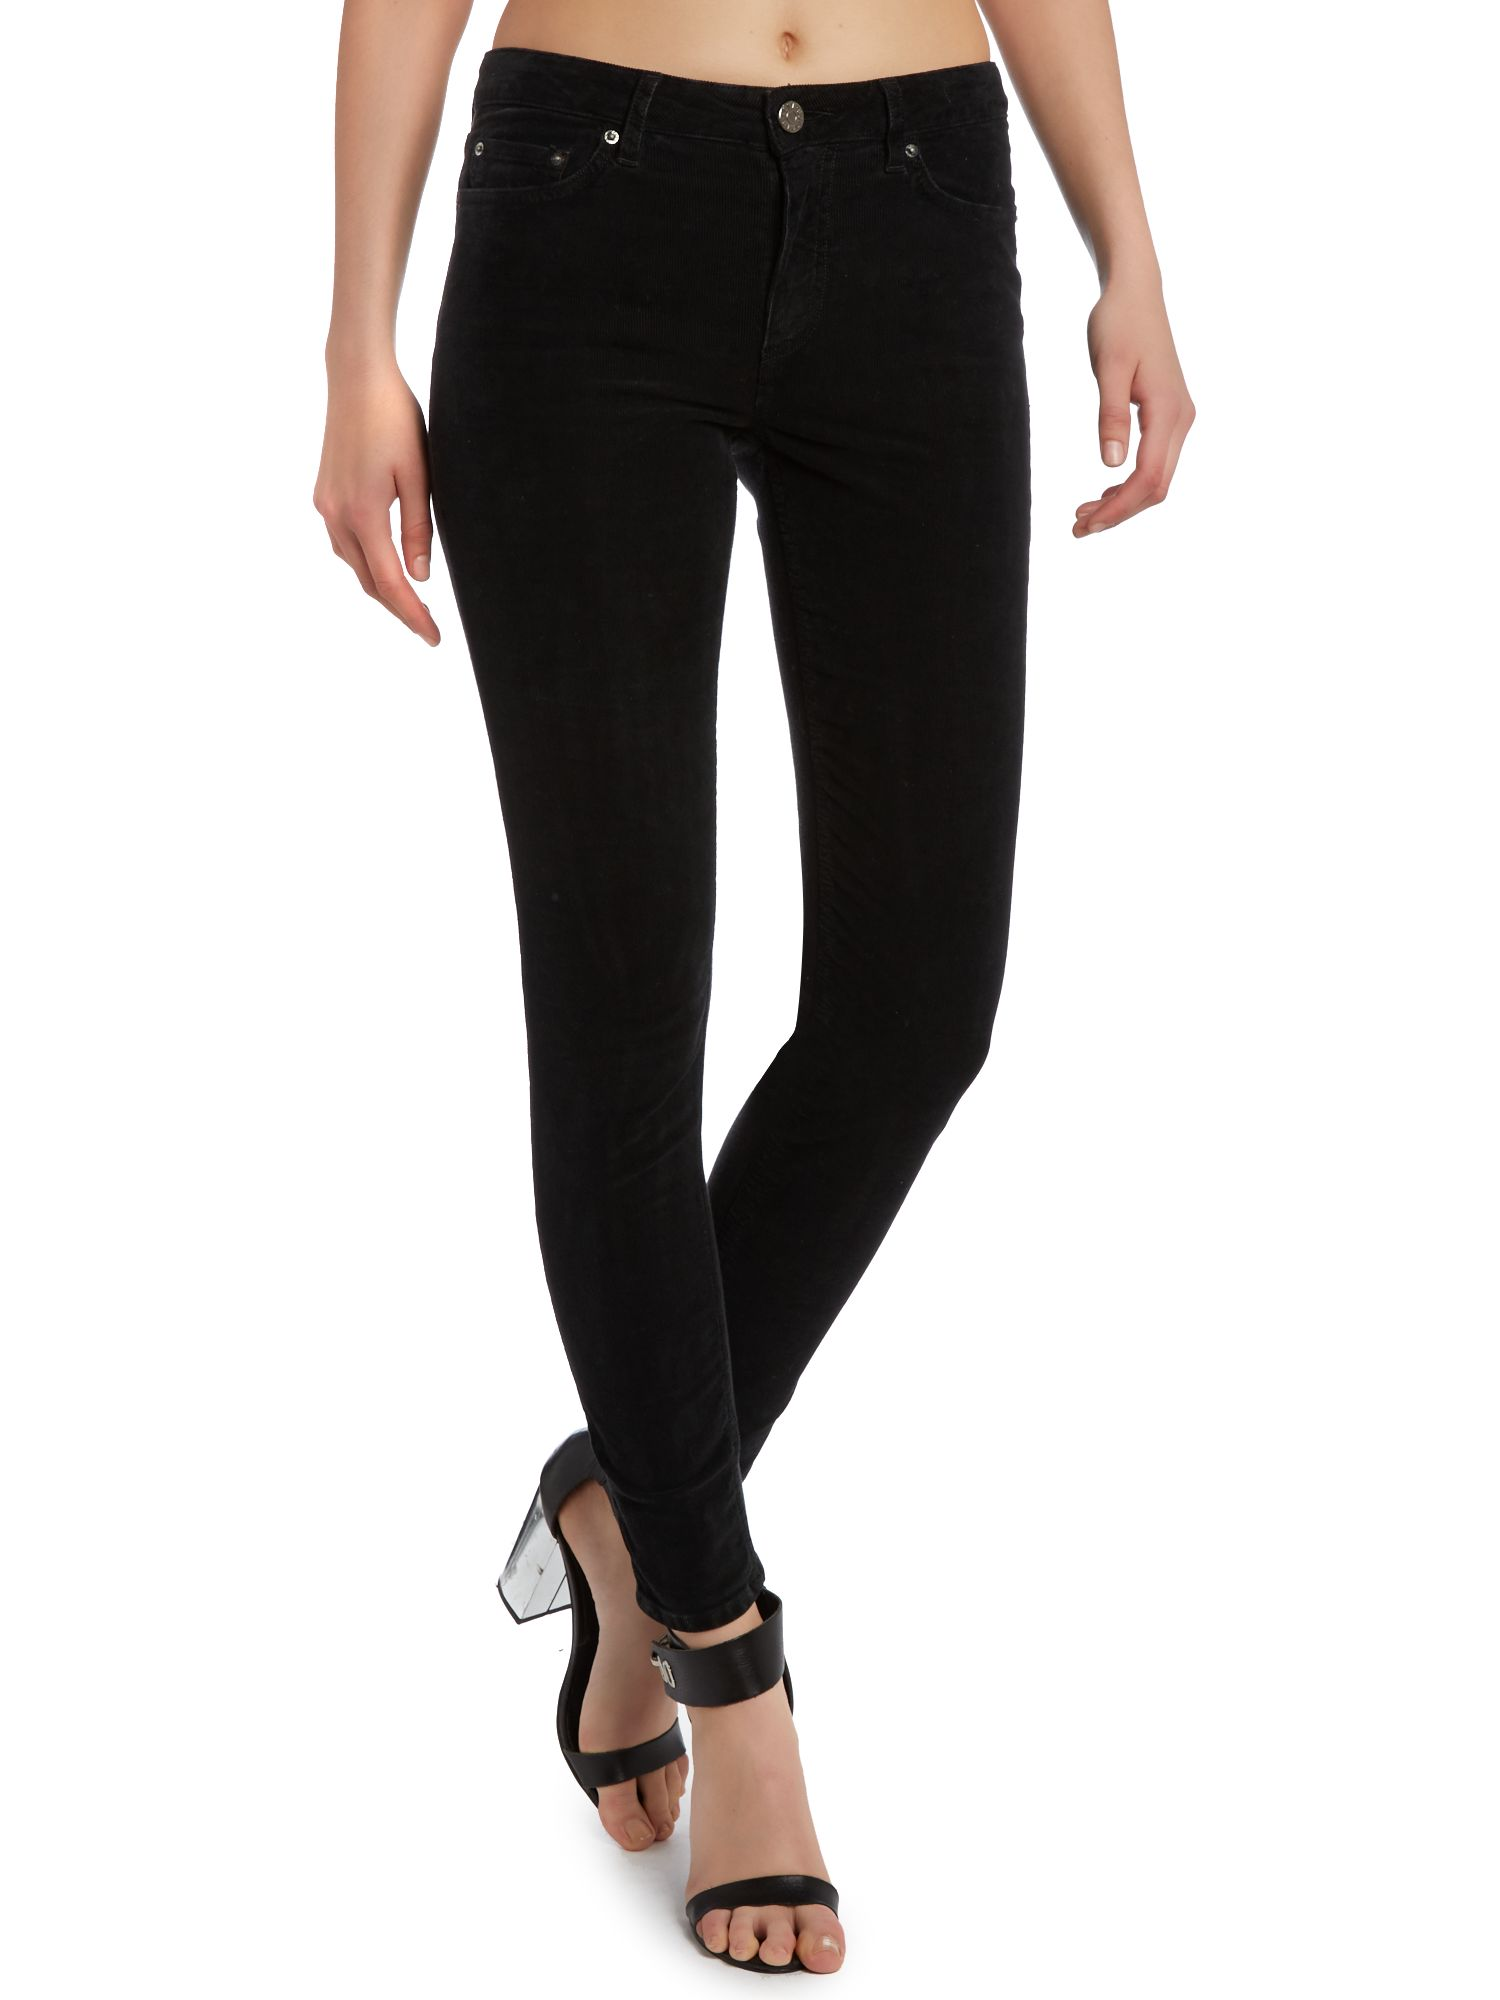 Skin 5 pocket black jeans